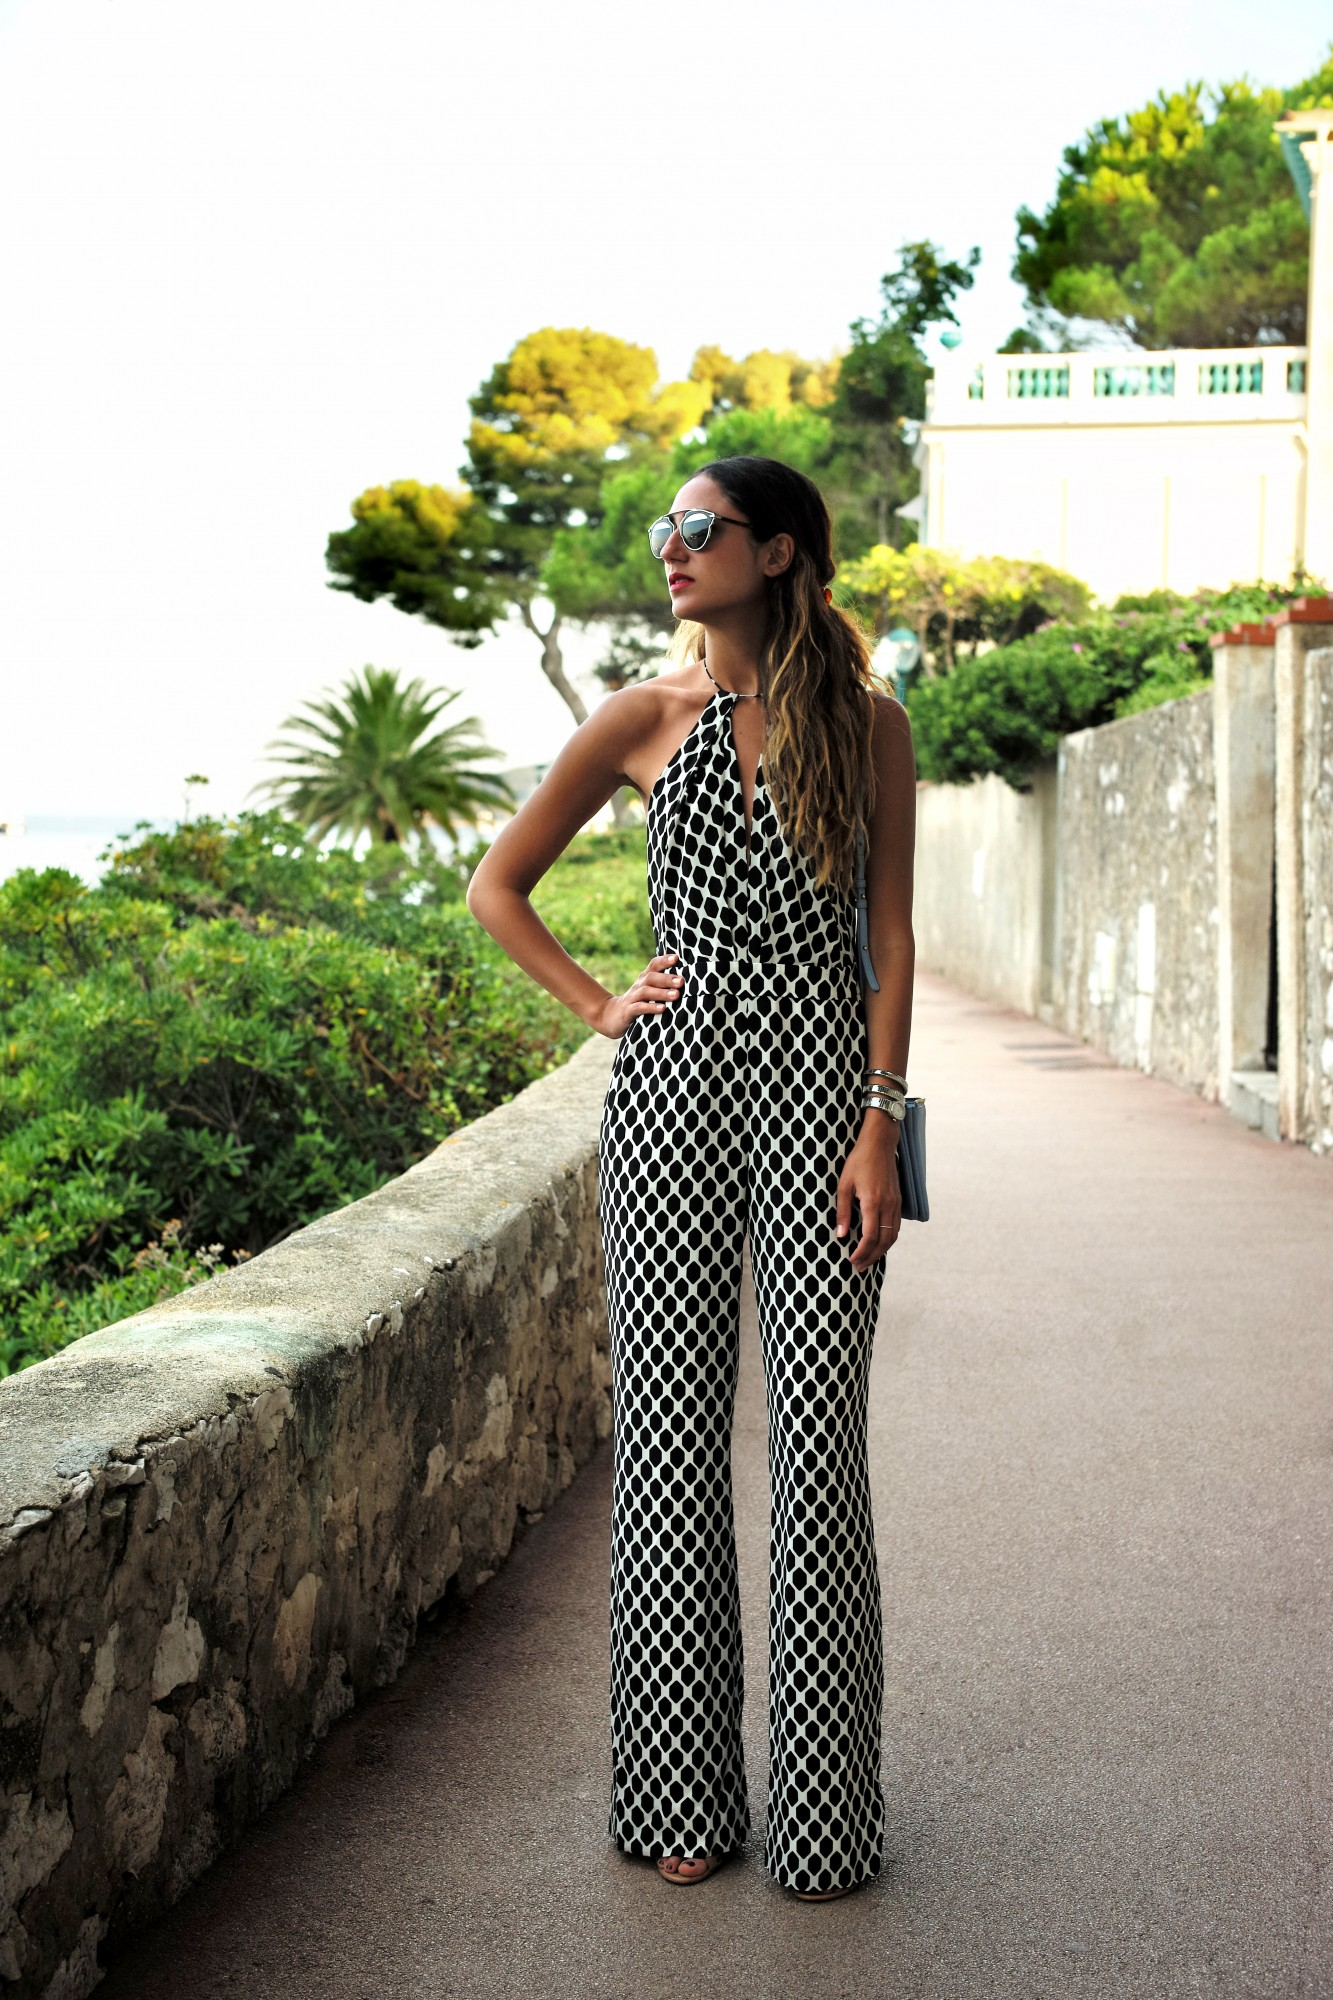 Soraya Bakhtiar is wearing a geometric patterned jumpsuit from Diane Von Furstenberg Jumpsuit